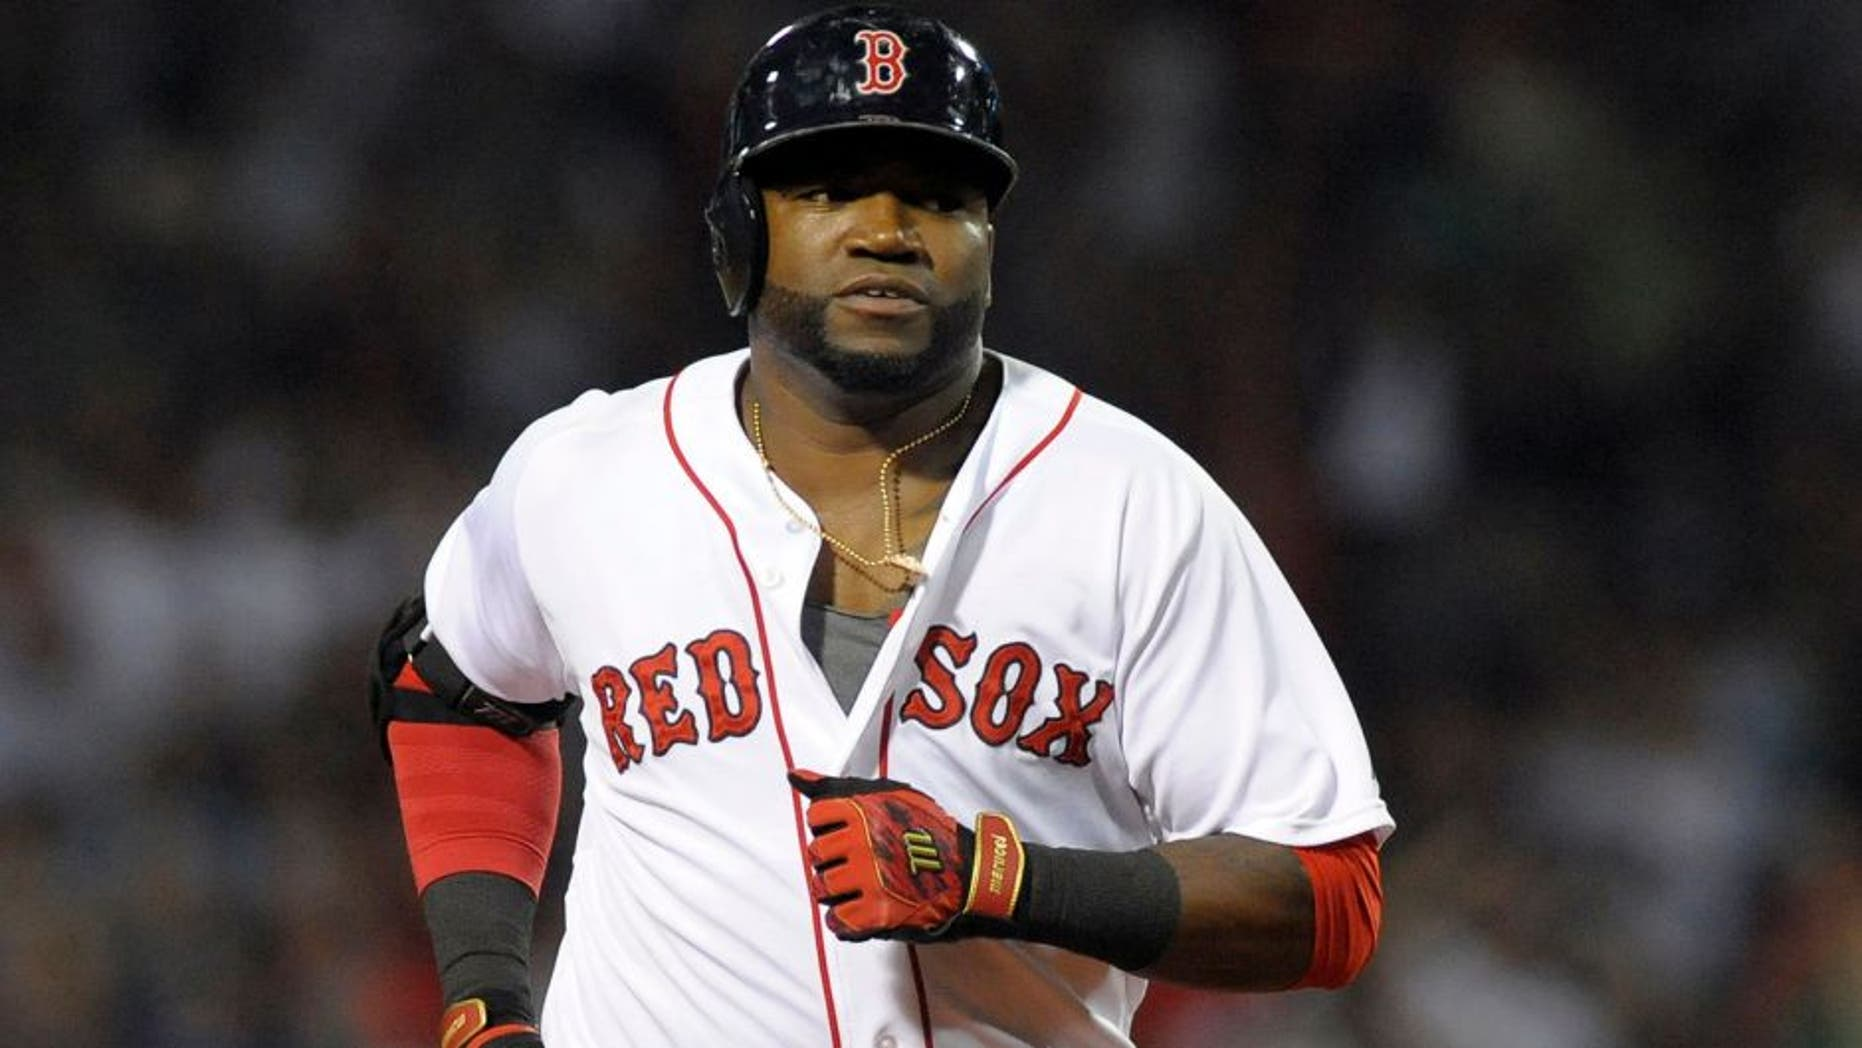 Aug 31, 2015; Boston, MA, USA; Boston Red Sox designated hitter David Ortiz (34) rounds the bases after hitting a home run during the fourth inning against the New York Yankees at Fenway Park. Mandatory Credit: Bob DeChiara-USA TODAY Sports